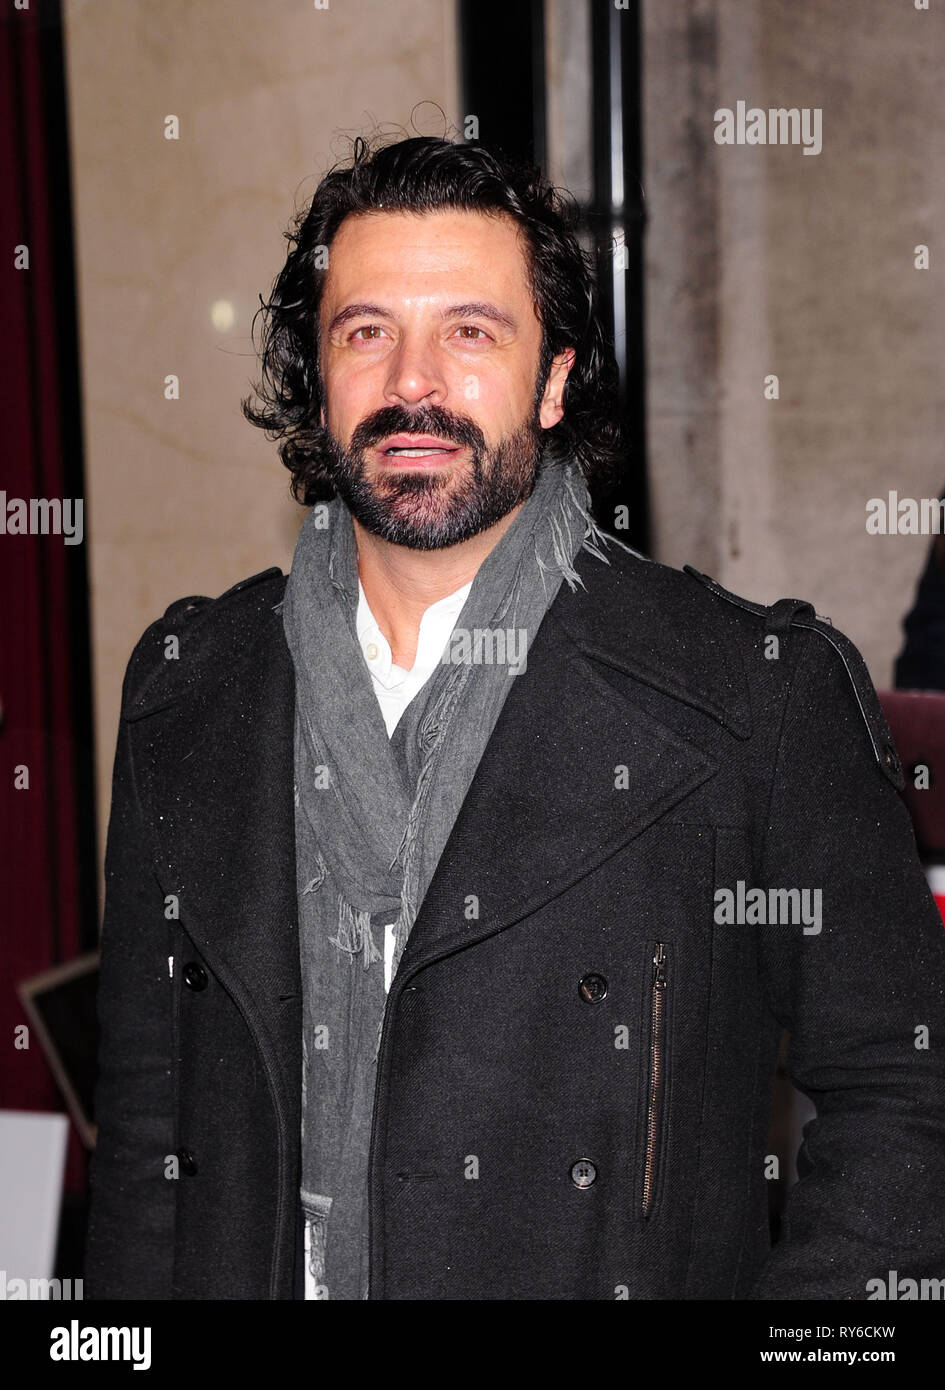 London, UK. 12th Mar, 2019. Christian Vit attending The TRIC Awards 50th Anniversary 2019 at The Grosvenor House Hotel London 12th March 2019 Credit: Peter Phillips/Alamy Live News - Stock Image